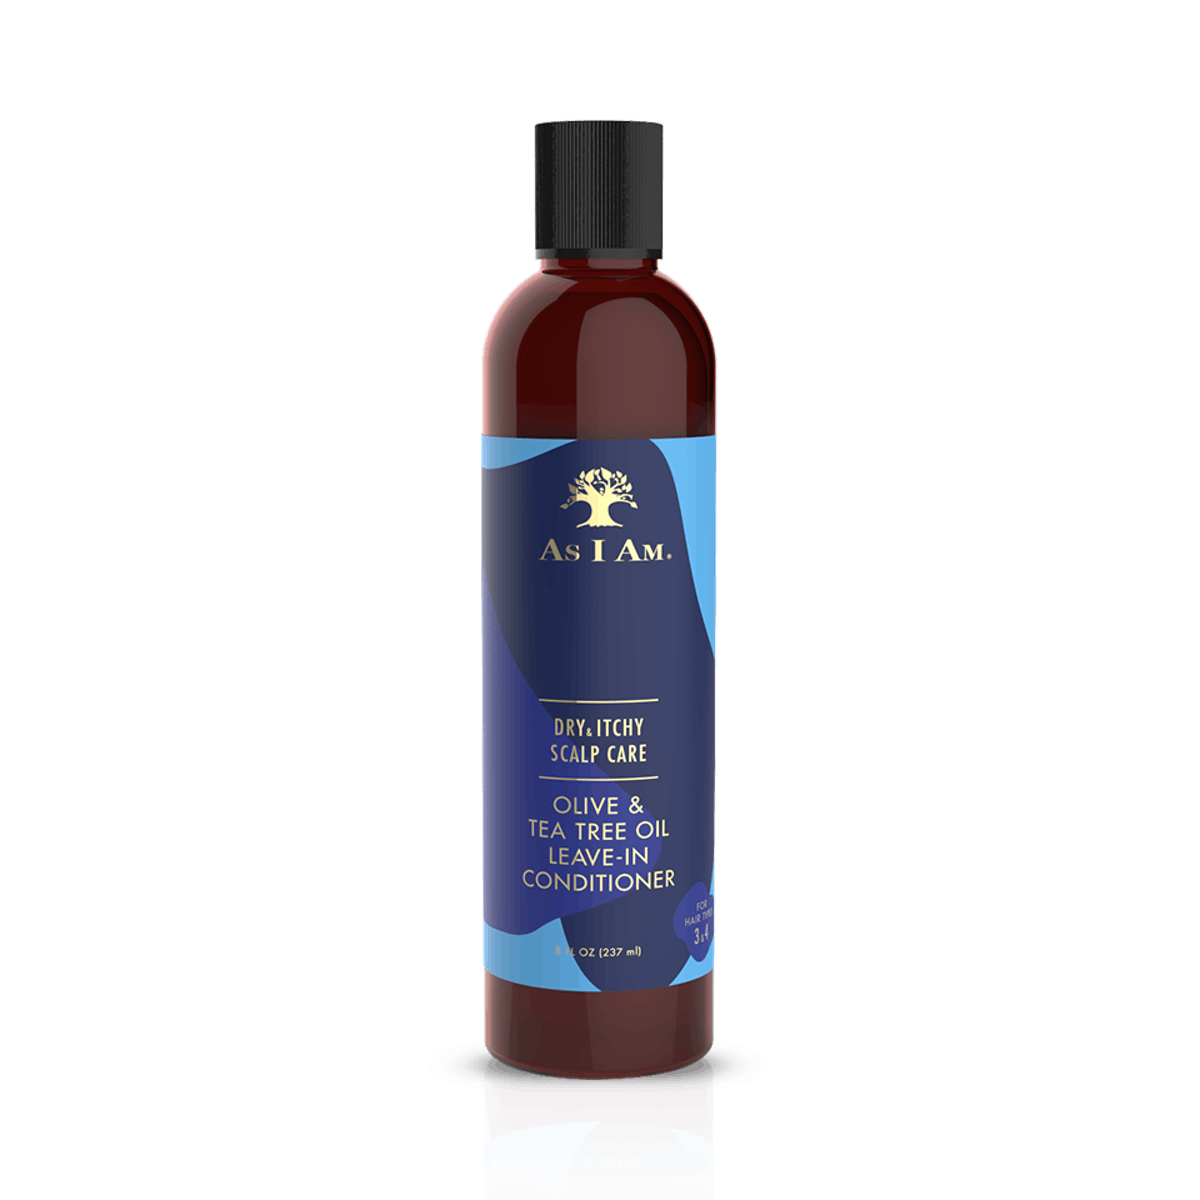 Dry & Itchy Scalp Care Leave In Conditioner